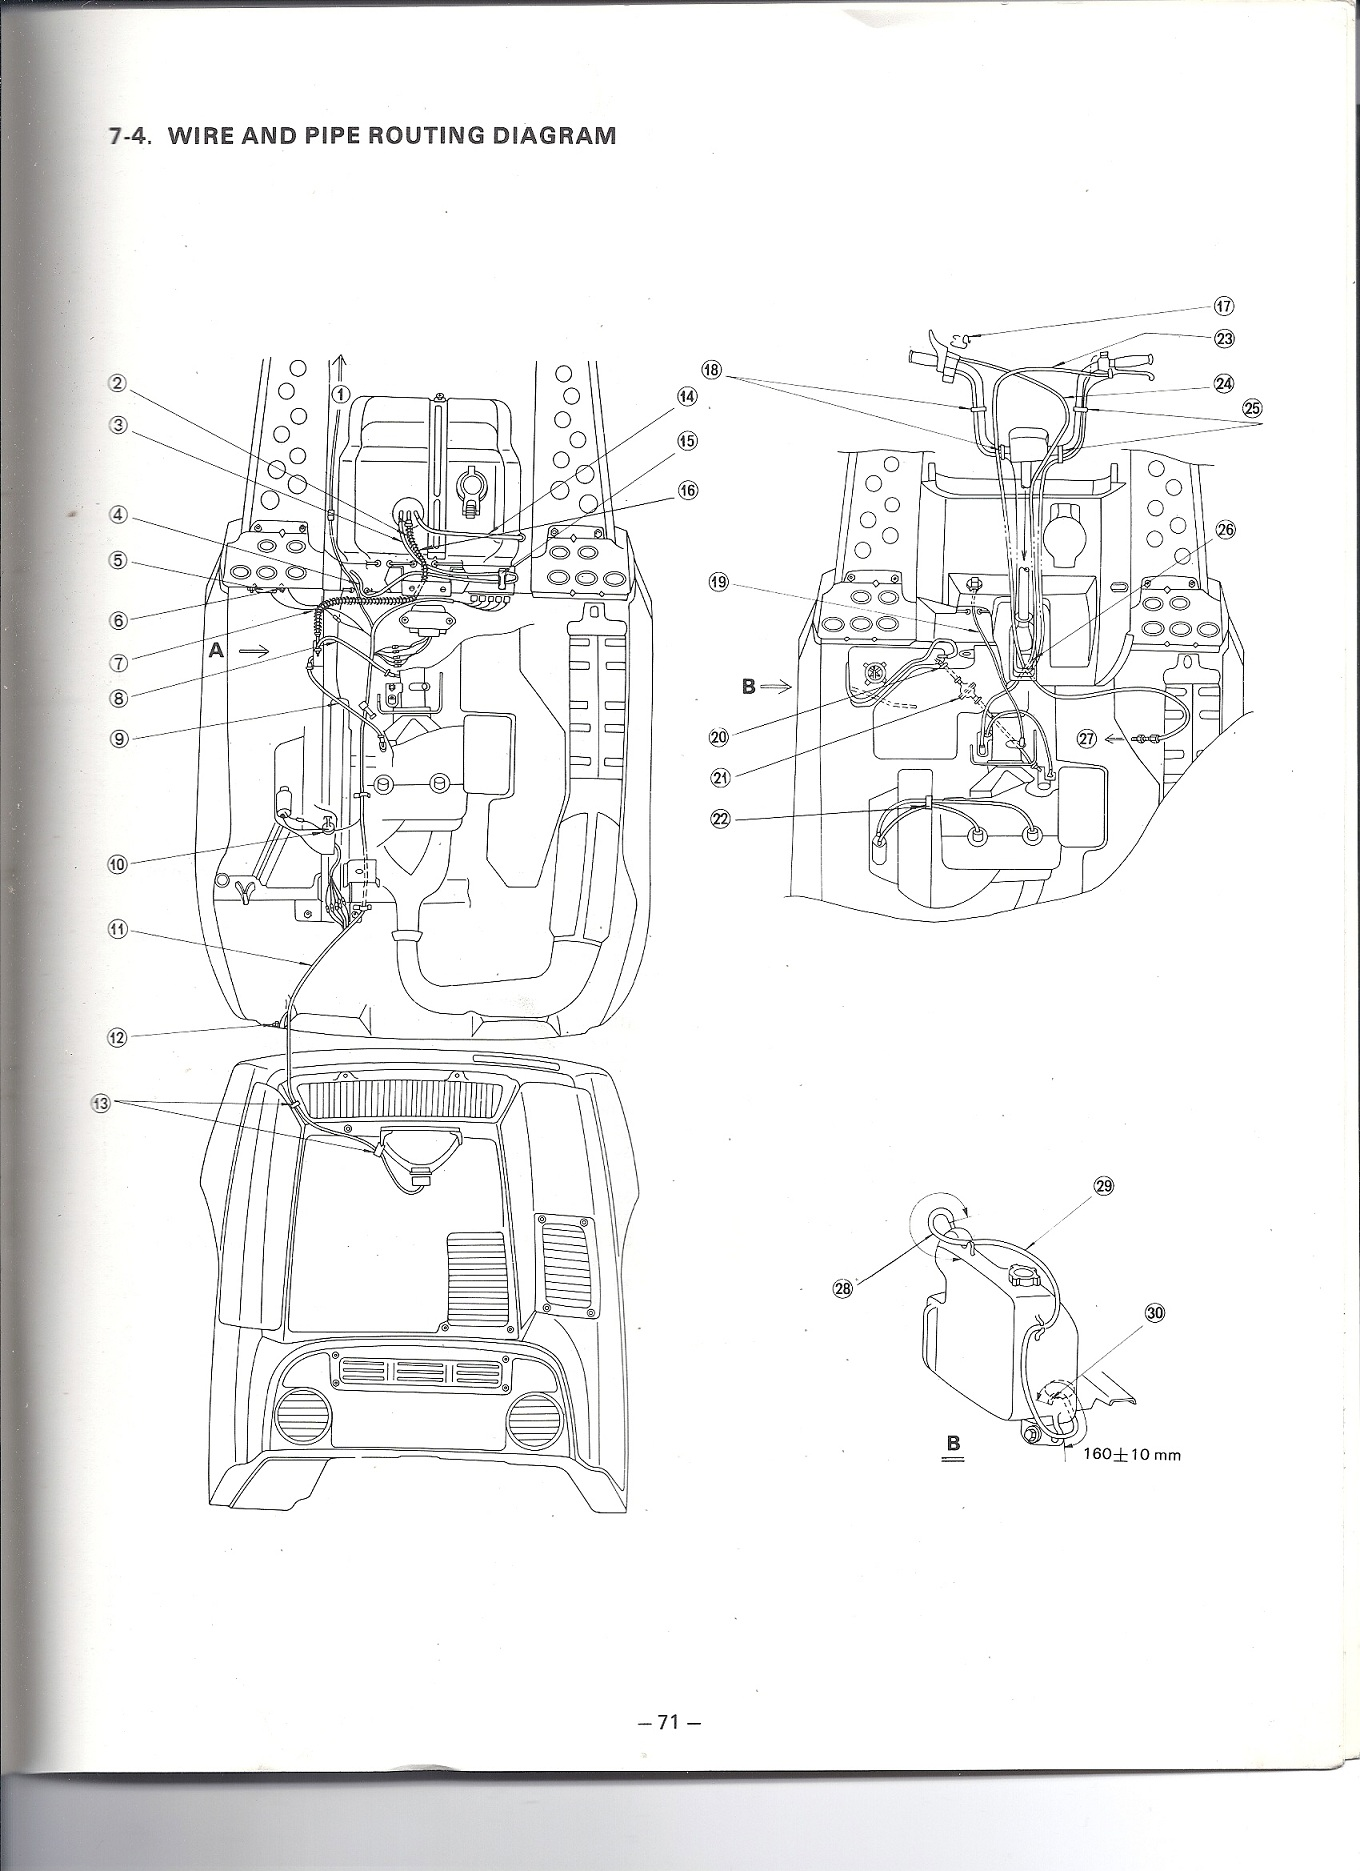 yamaha 250 enticer wiring diagram auto electrical wiring diagram u2022 rh 6weeks co uk 1978 yamaha enticer 250 wiring diagram